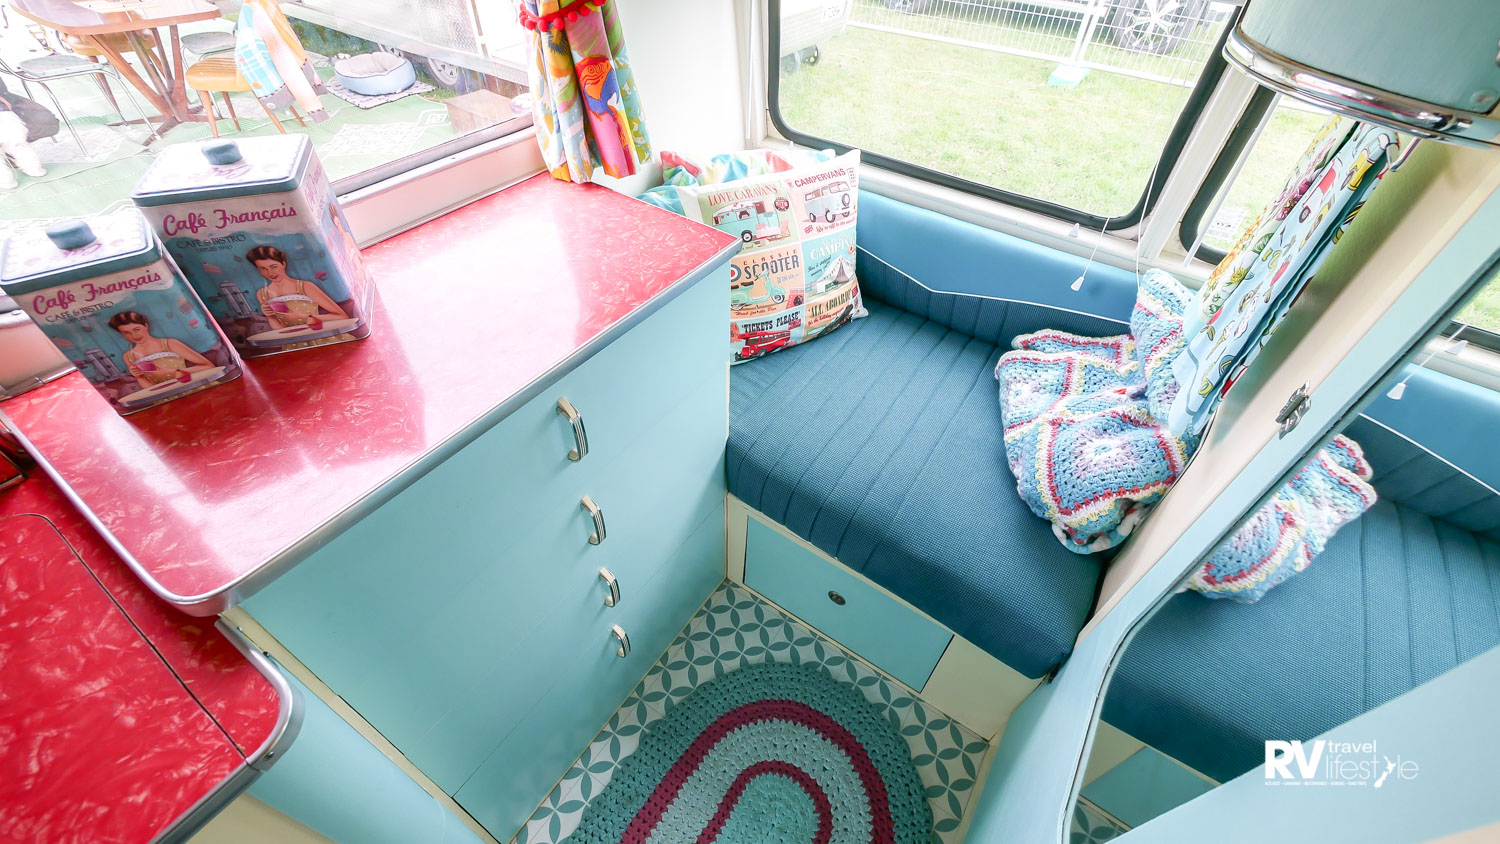 Single berth at one end, set back storage drawers, and lovely curved overhead cupboards, there is lots to love here